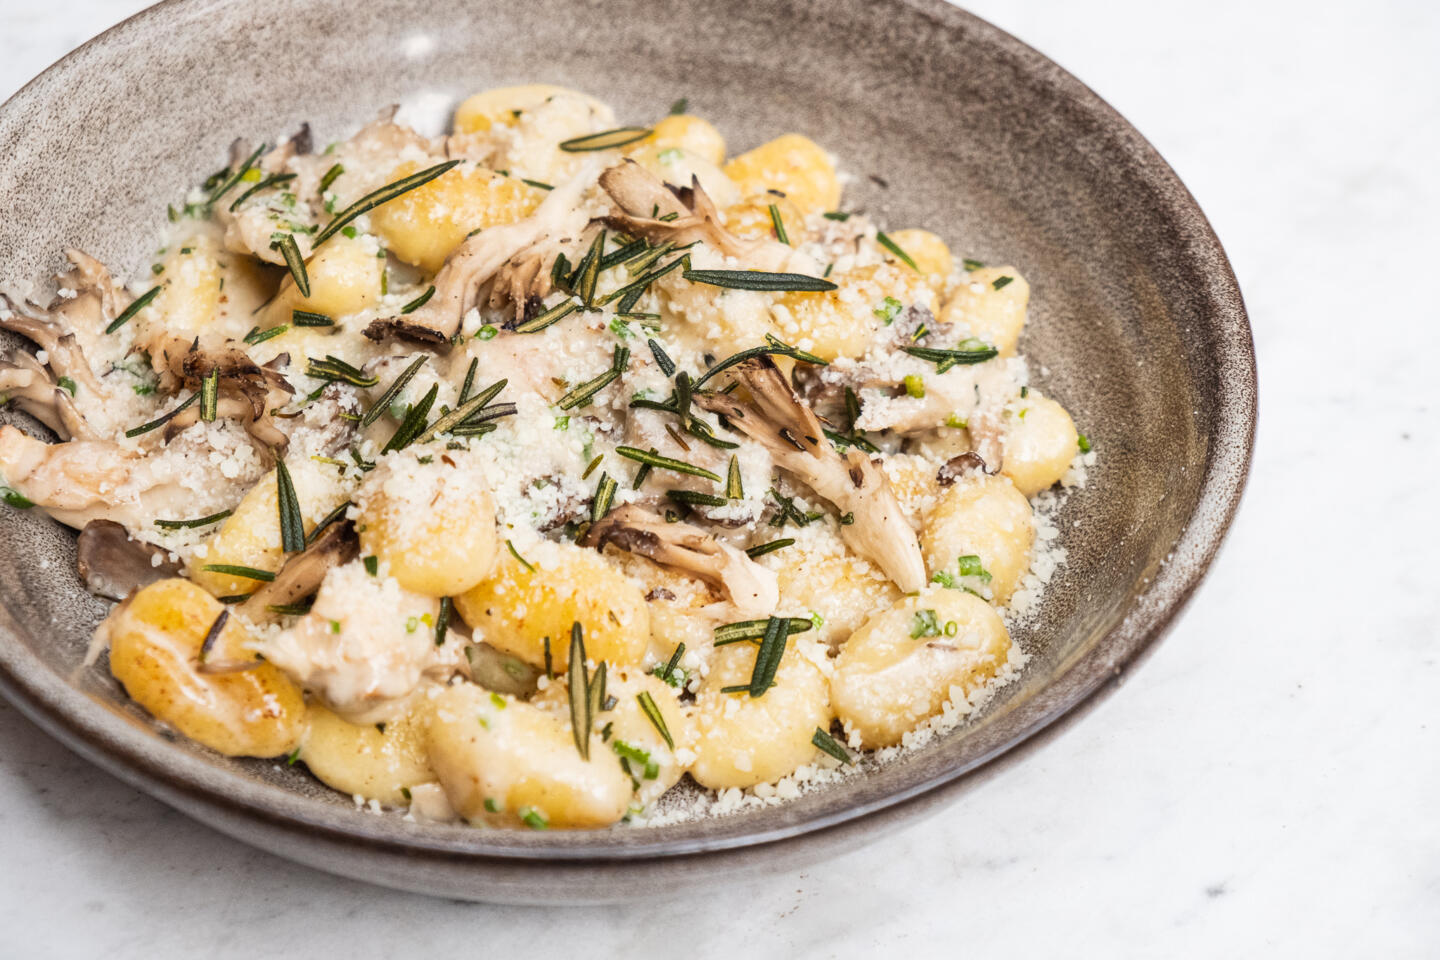 Potato Gnocchi from Summer houe with mushrooms